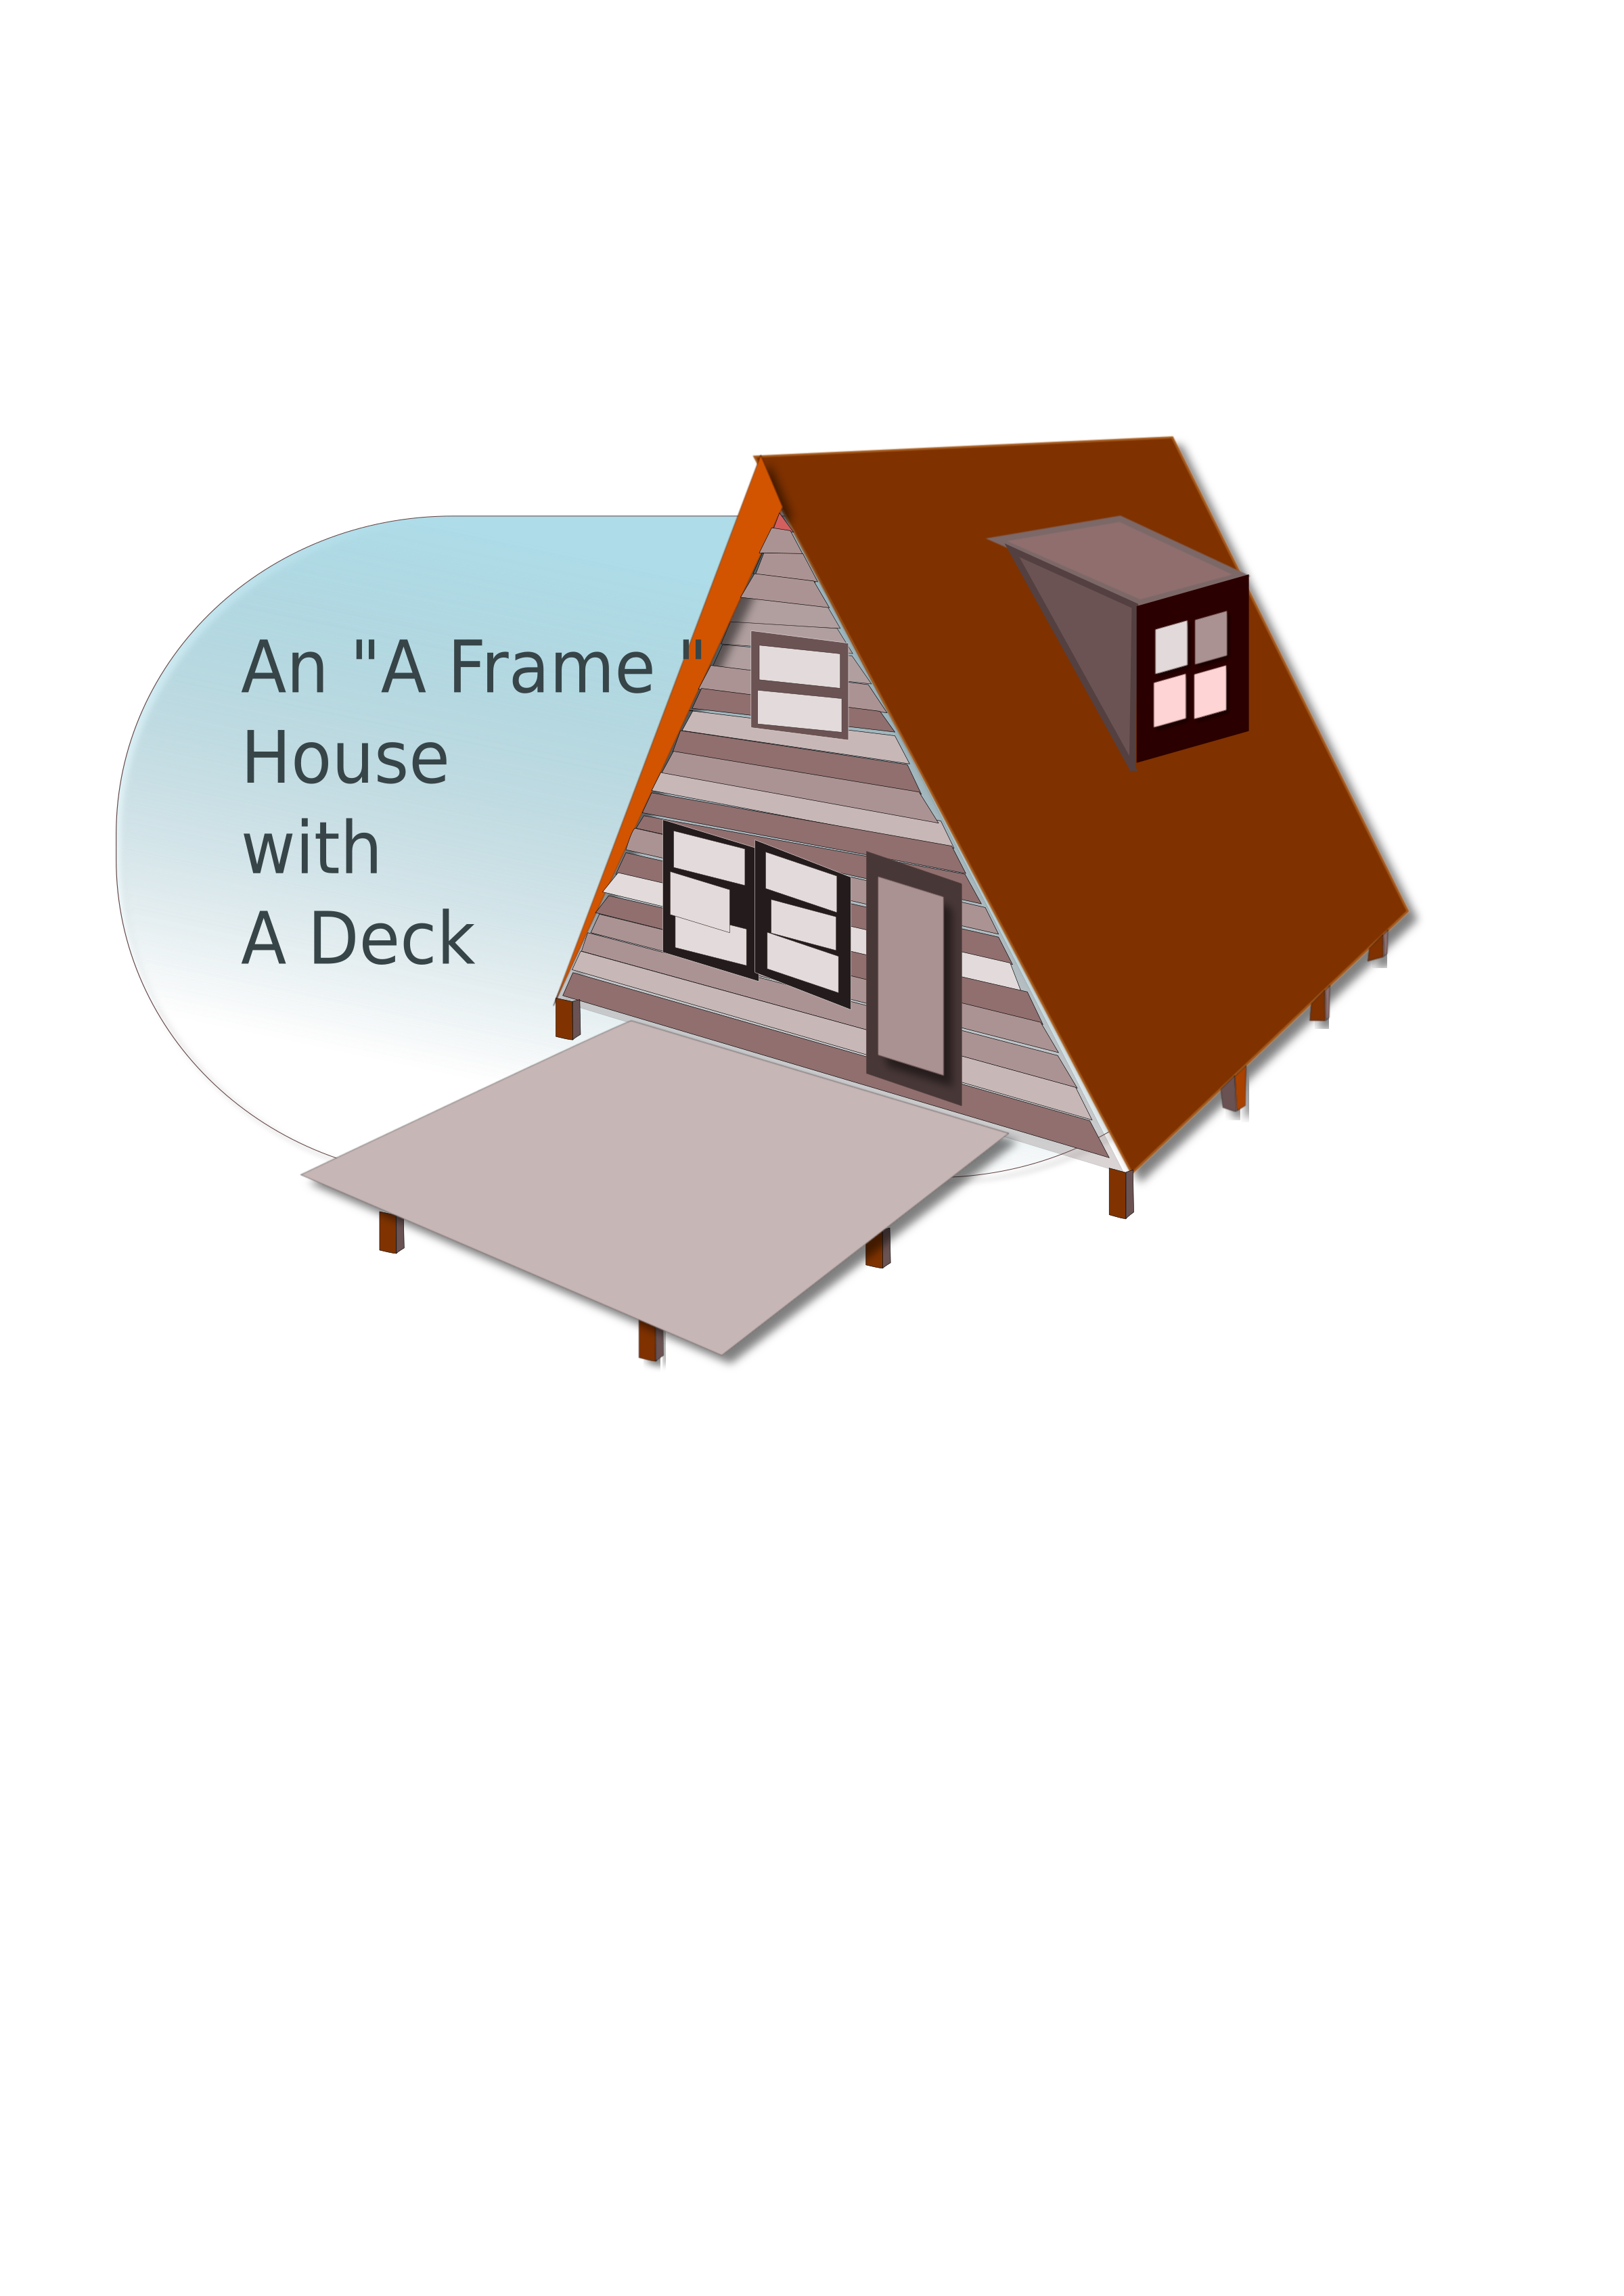 A frame house clipart image black and white library Clipart - A frame House image black and white library